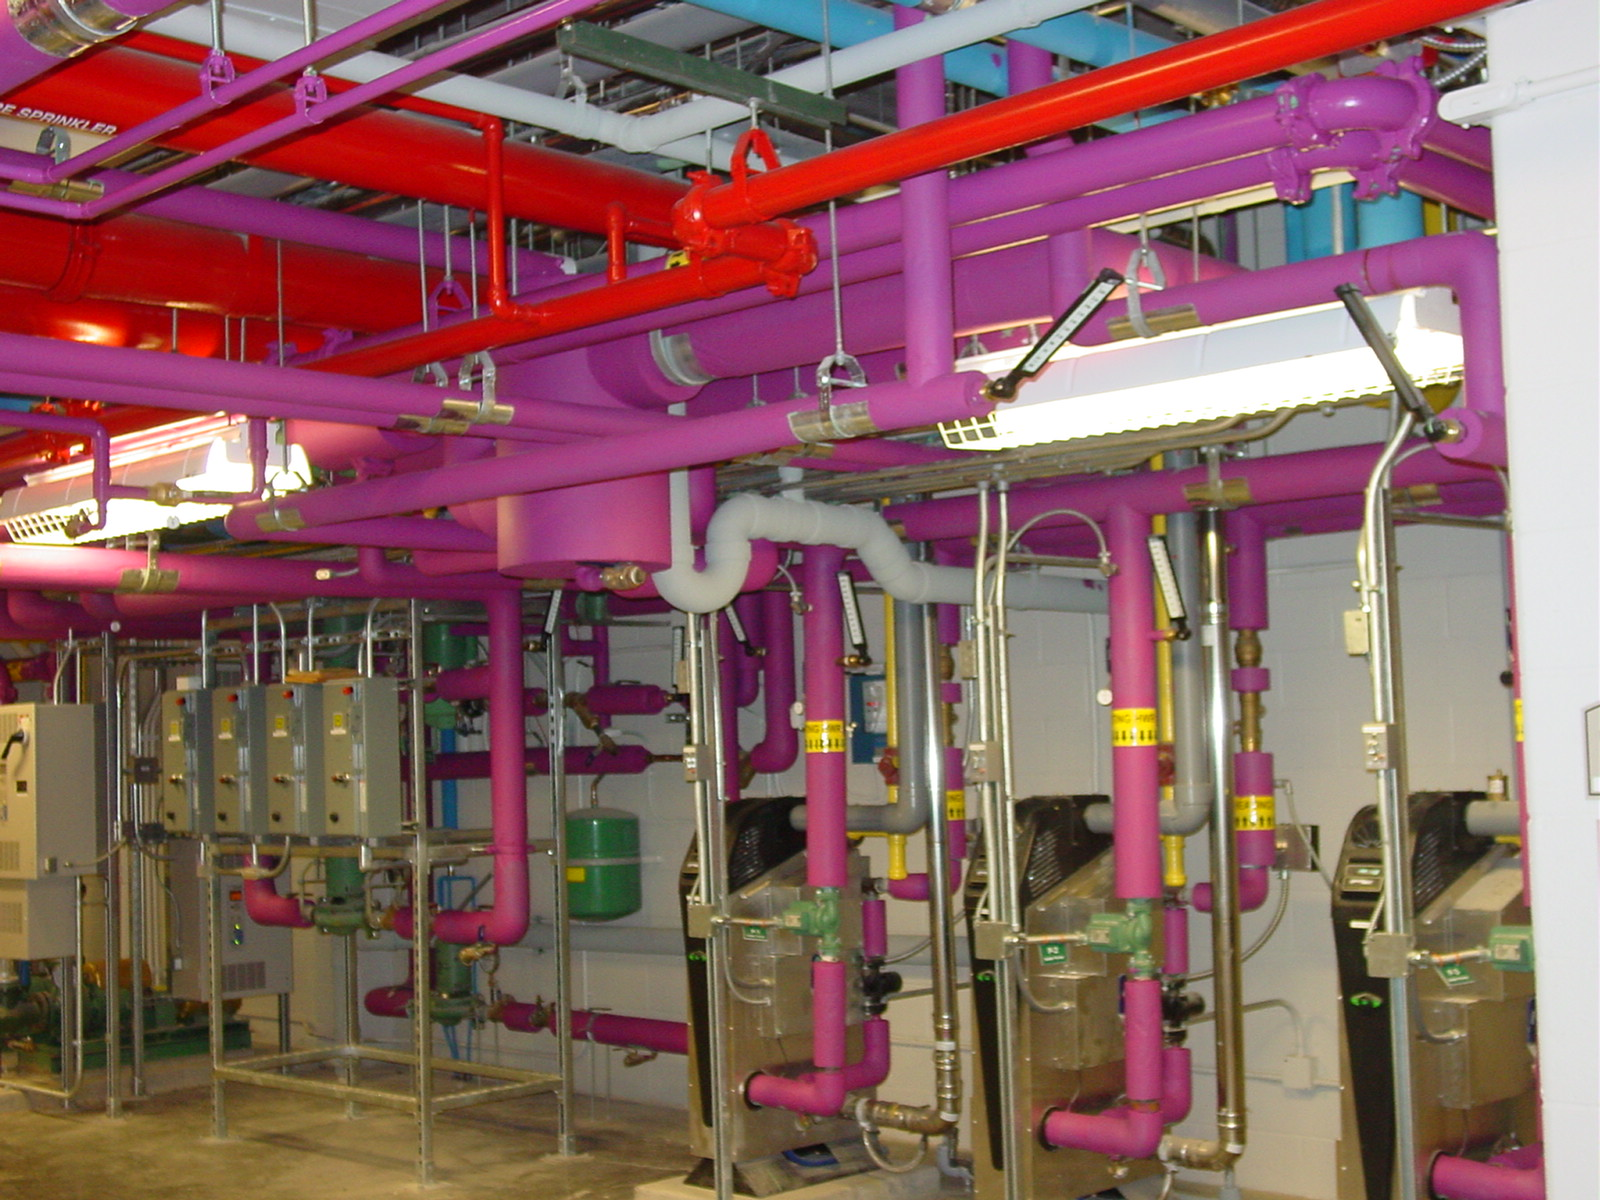 NYPA Mechanical Room